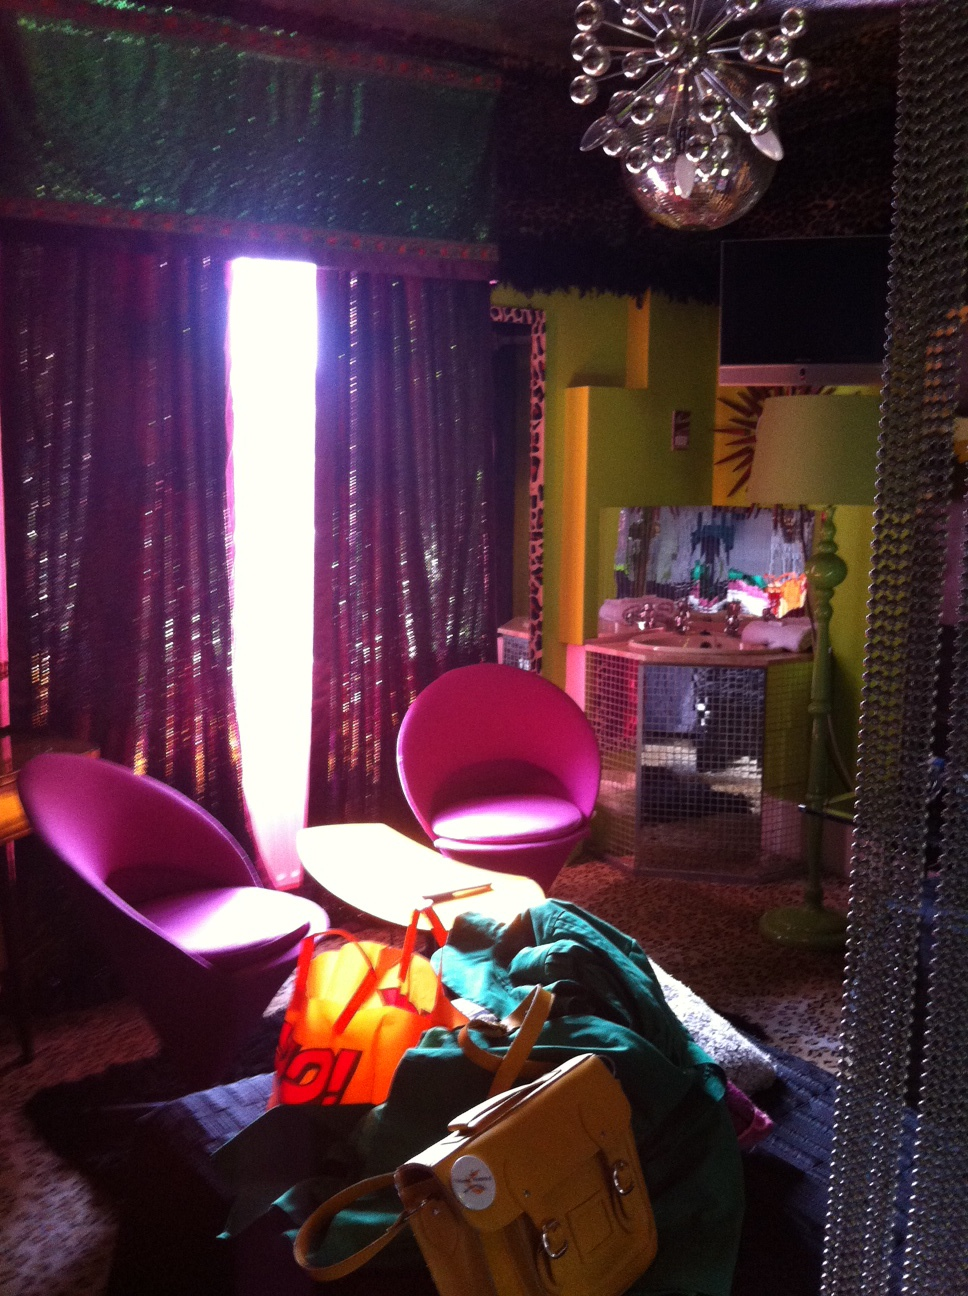 The Funkiest Hotel Room in London